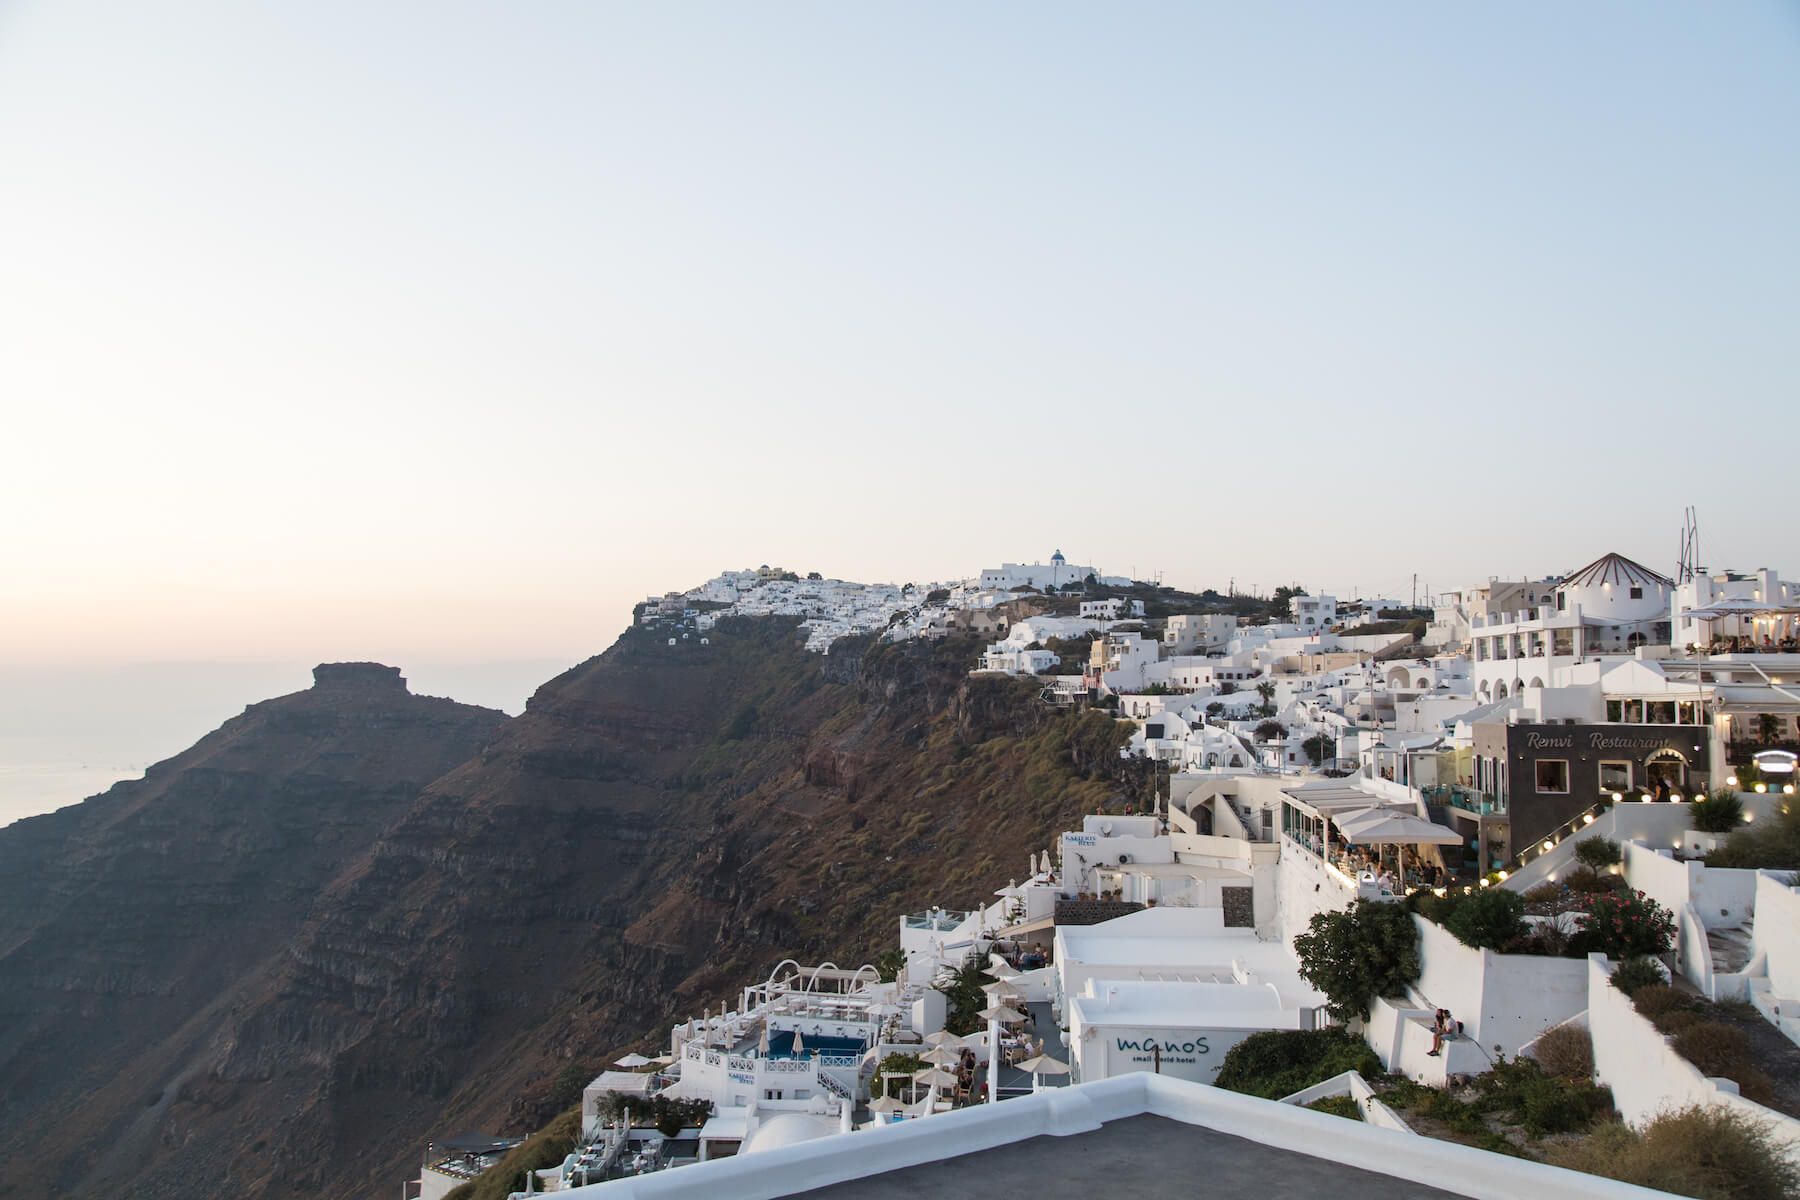 View of houses on a cliff in Santorini, Greece